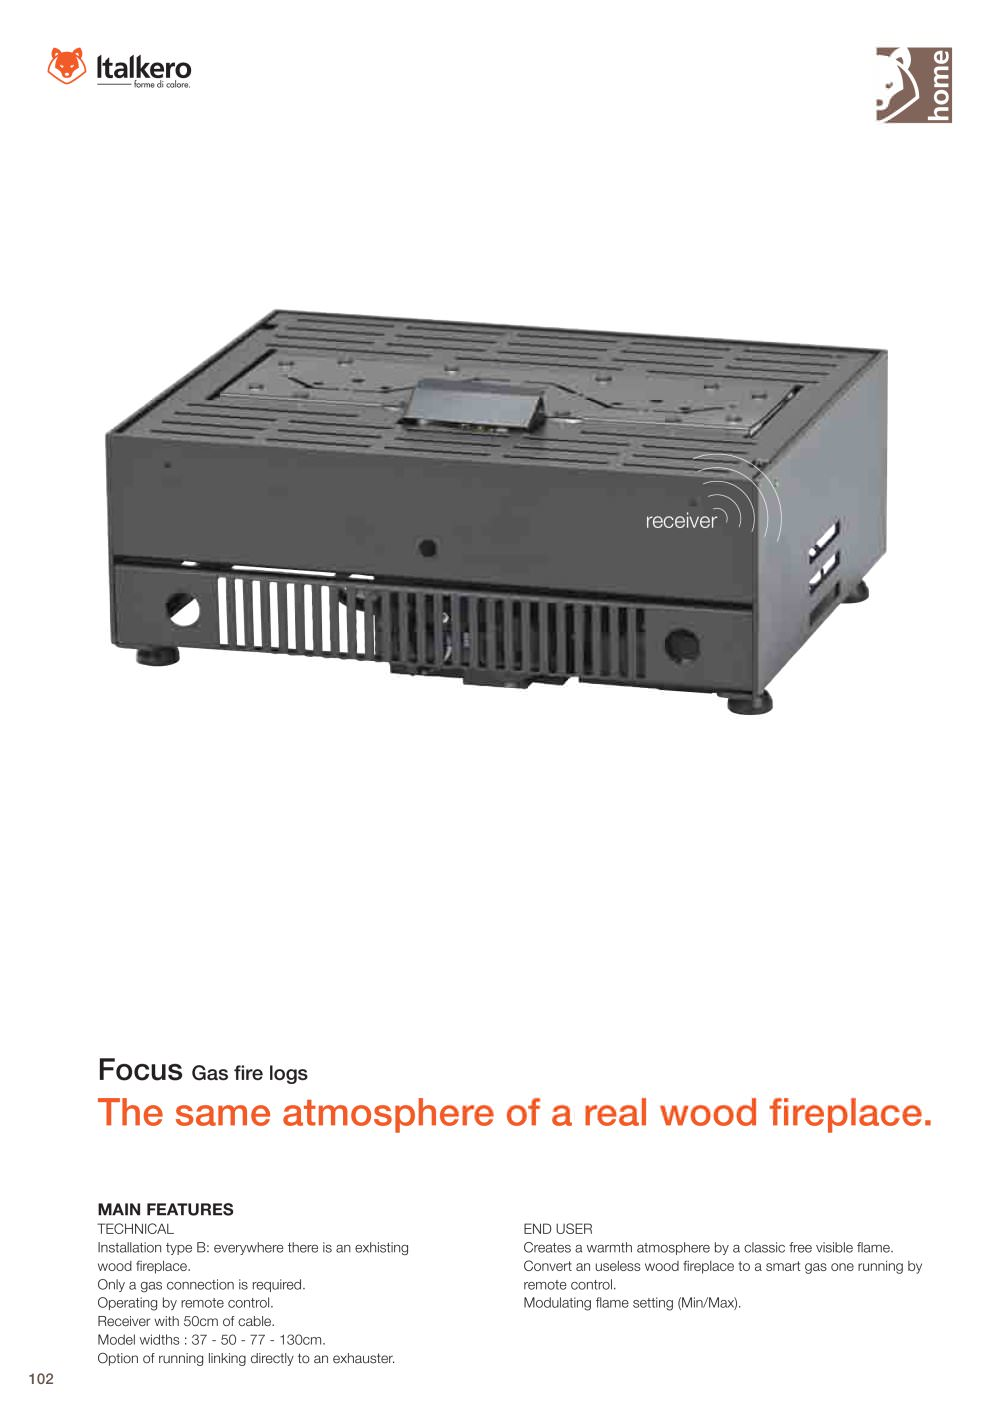 technical details gas fire log focus italkero pdf catalogues